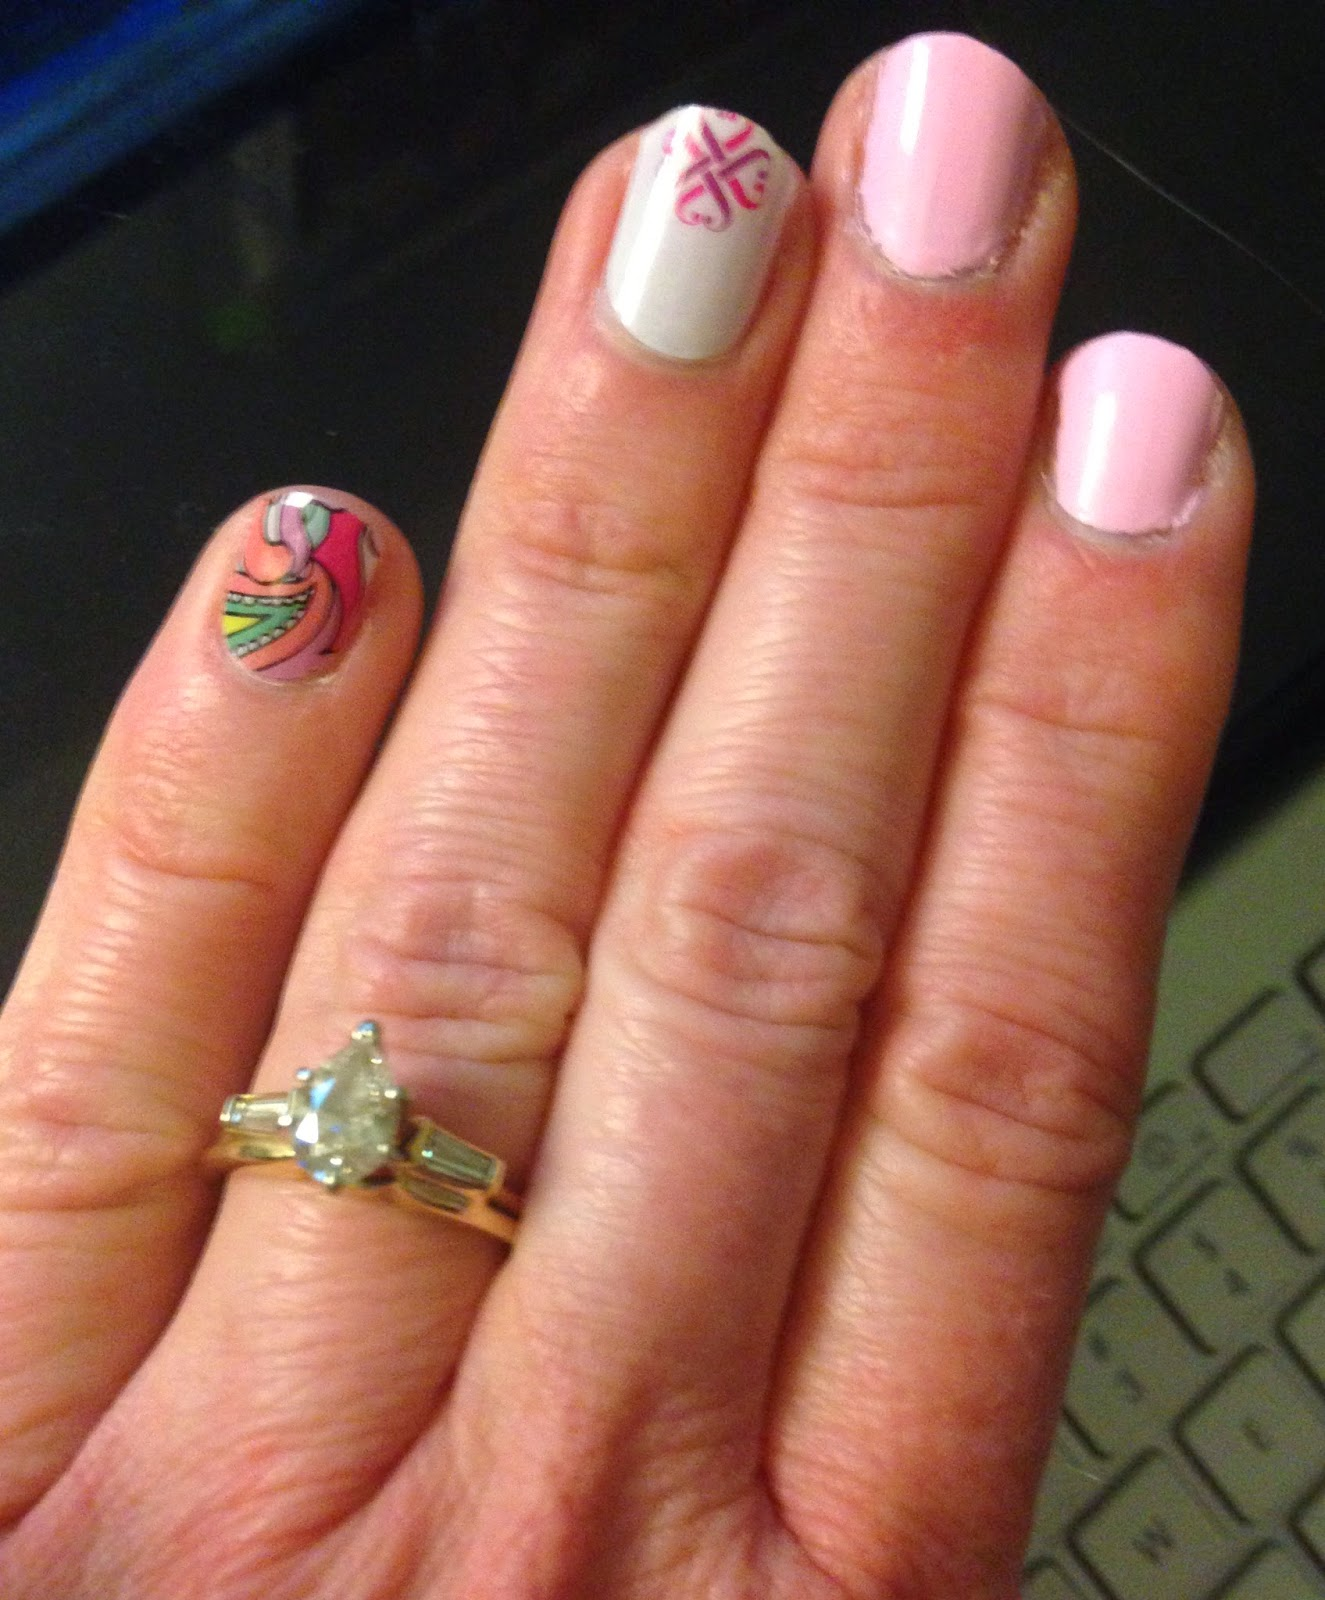 Morning Glories and Moonflowers: jamberry nails review and giveaway